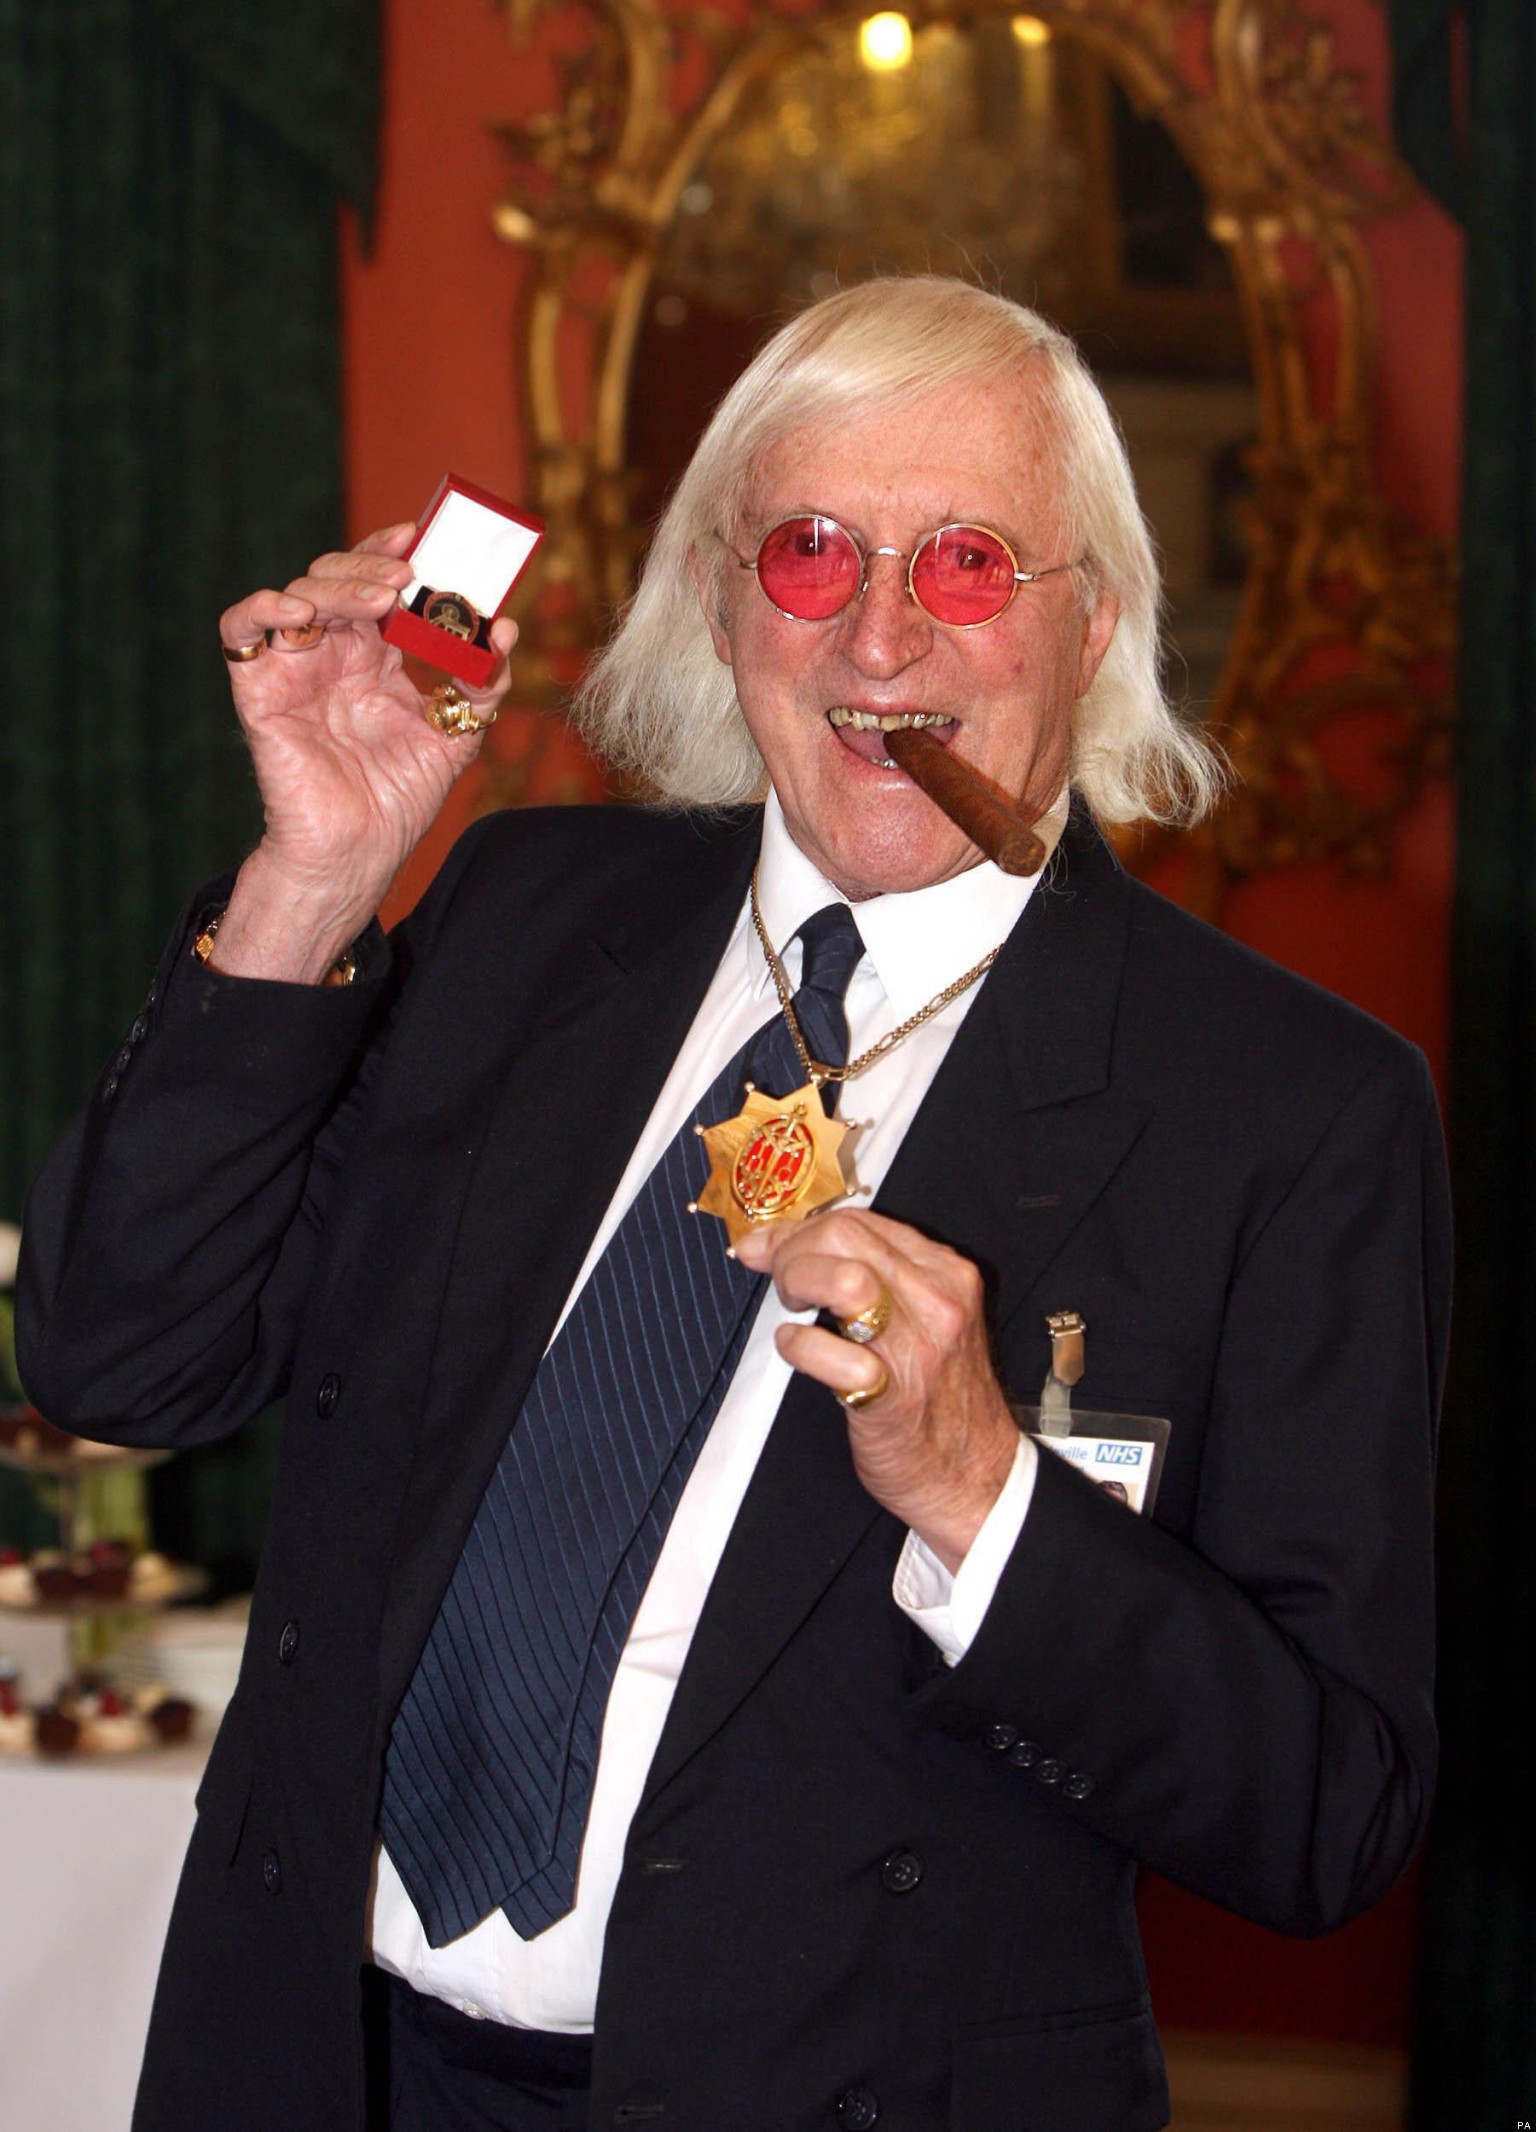 Durham University Rugby Club Banned After Jimmy Savile